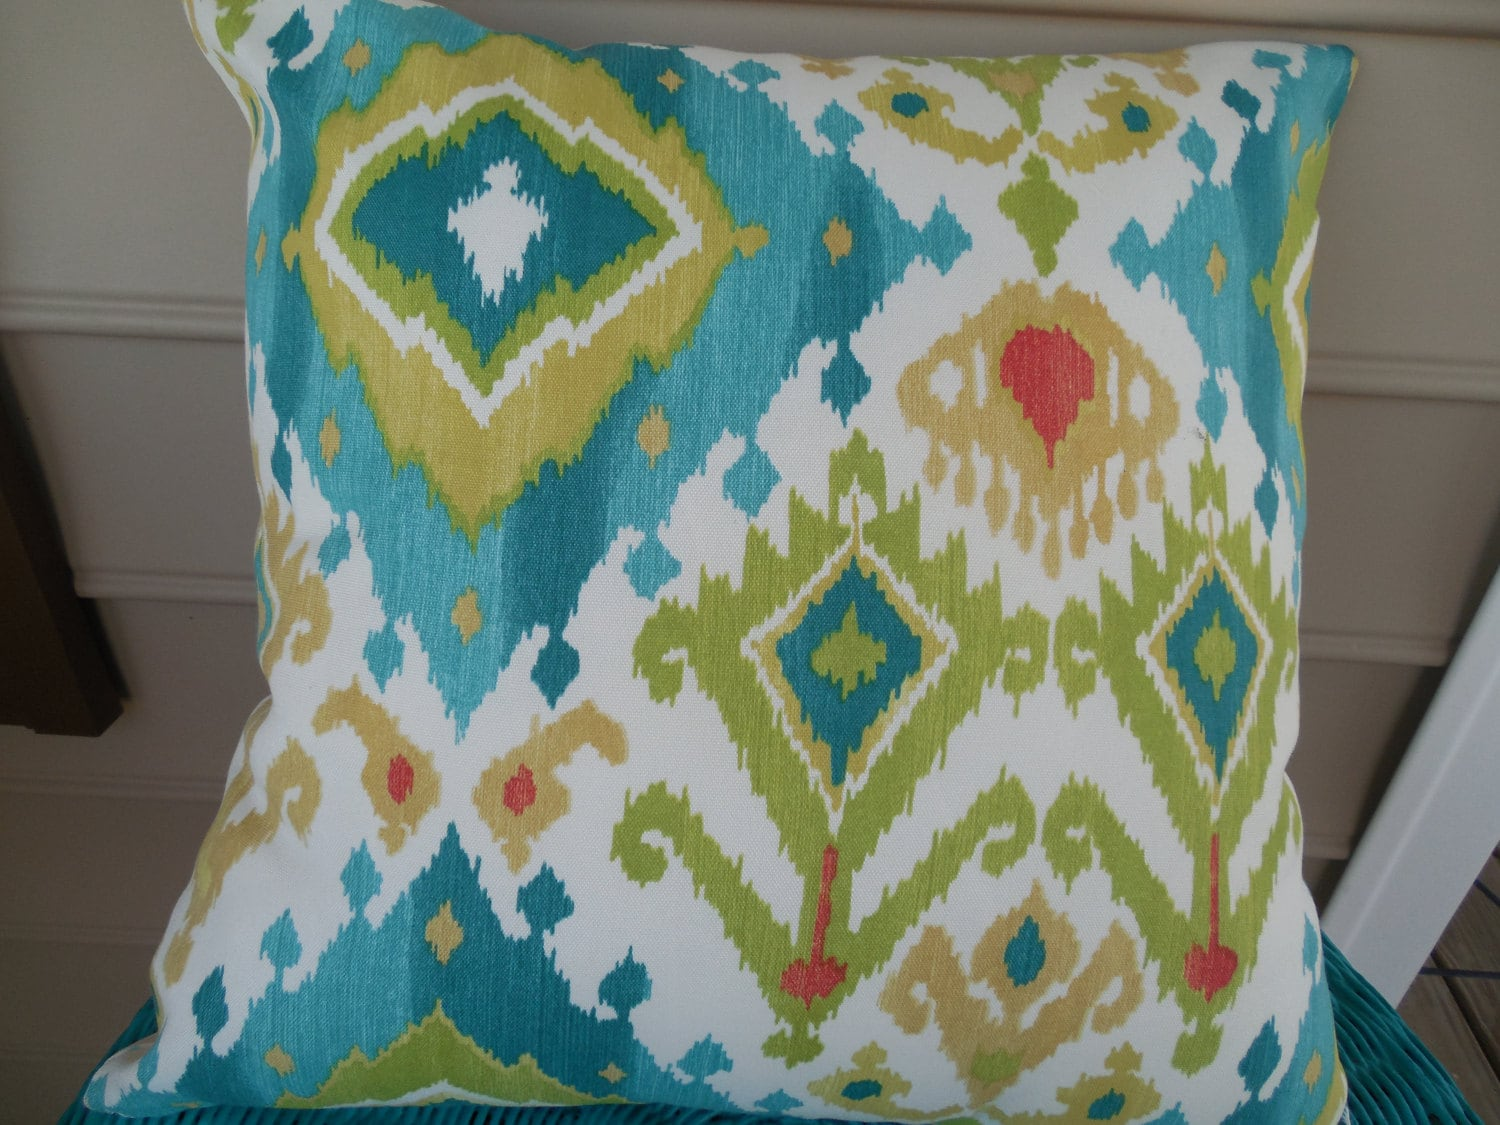 CLEARANCE Modern Ikat Outdoor Pillow Cover Patio Porch Decorative Throw  Pillow Cushion Turquoise Teal Green Diamond Chevron Stripe Mix Match